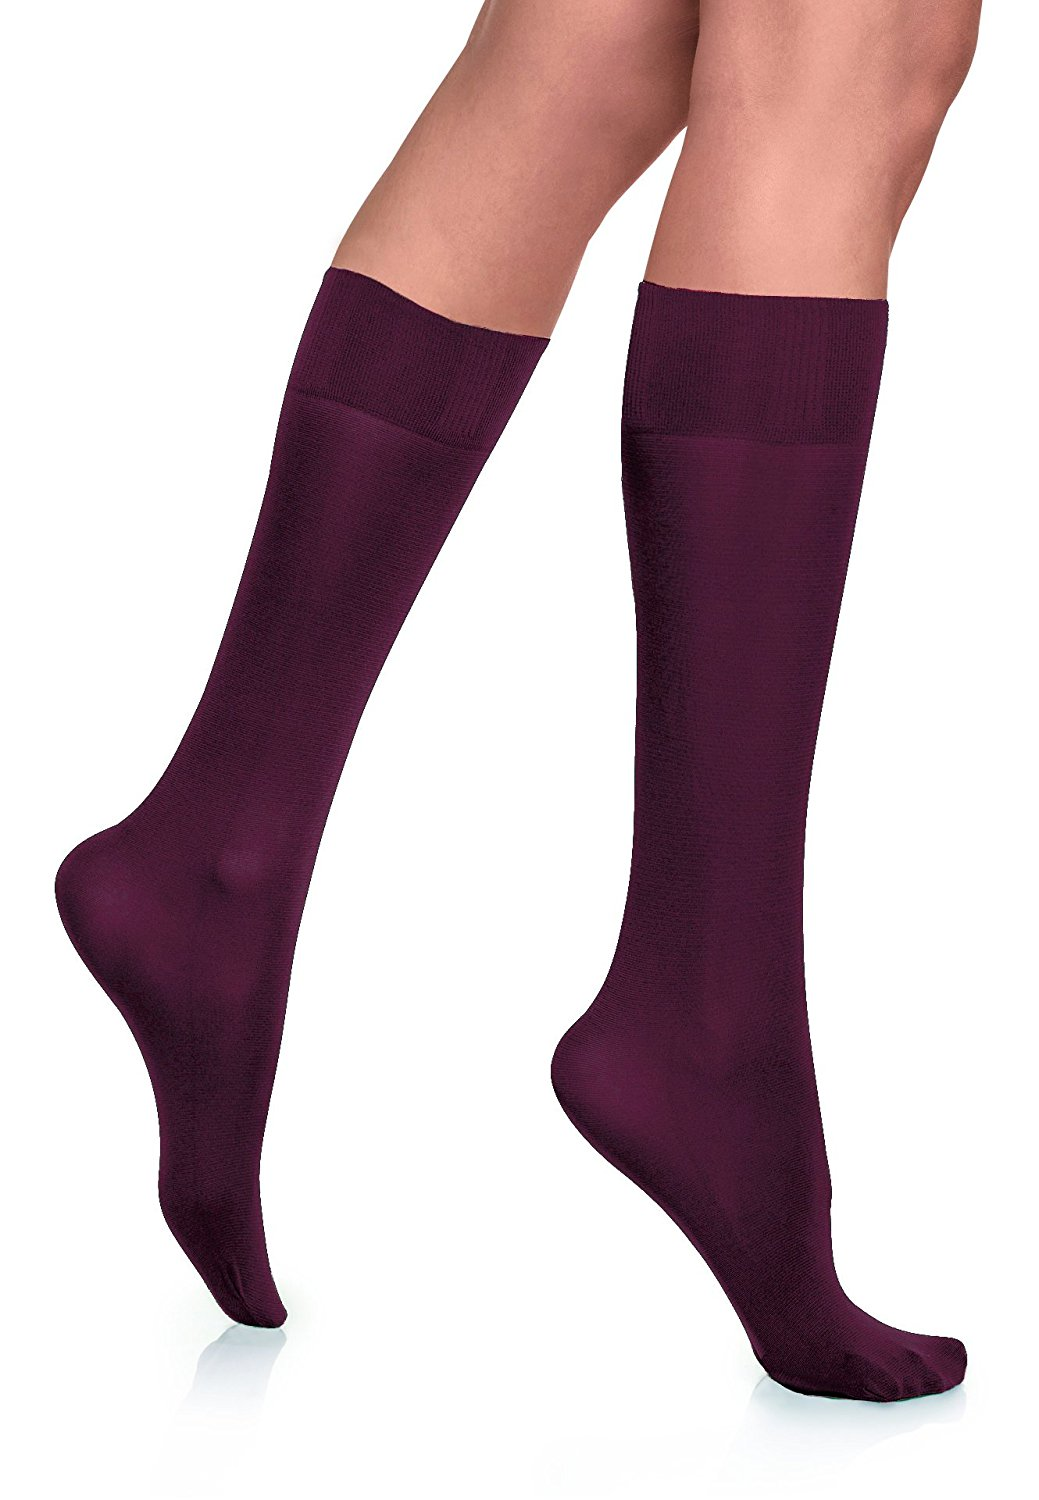 7996acfef23 Buy Opaque Knee High Socks White White opaque knee high socks with ...